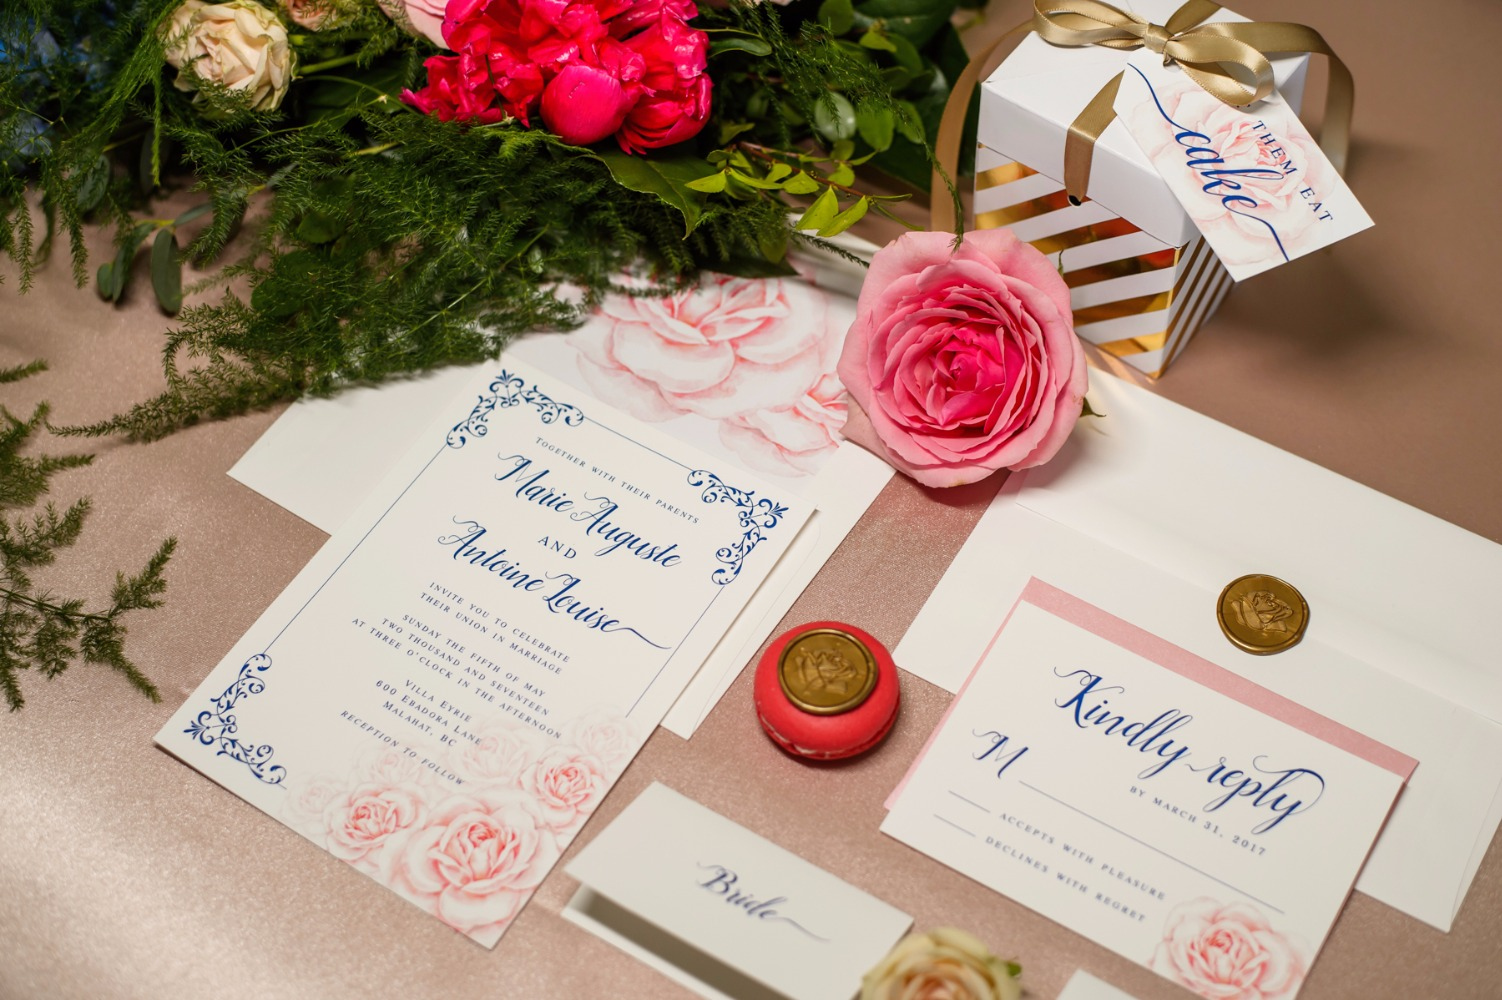 16_a-colorful-over-the-top-wedding-inspired-by-marie-antoinette.jpg